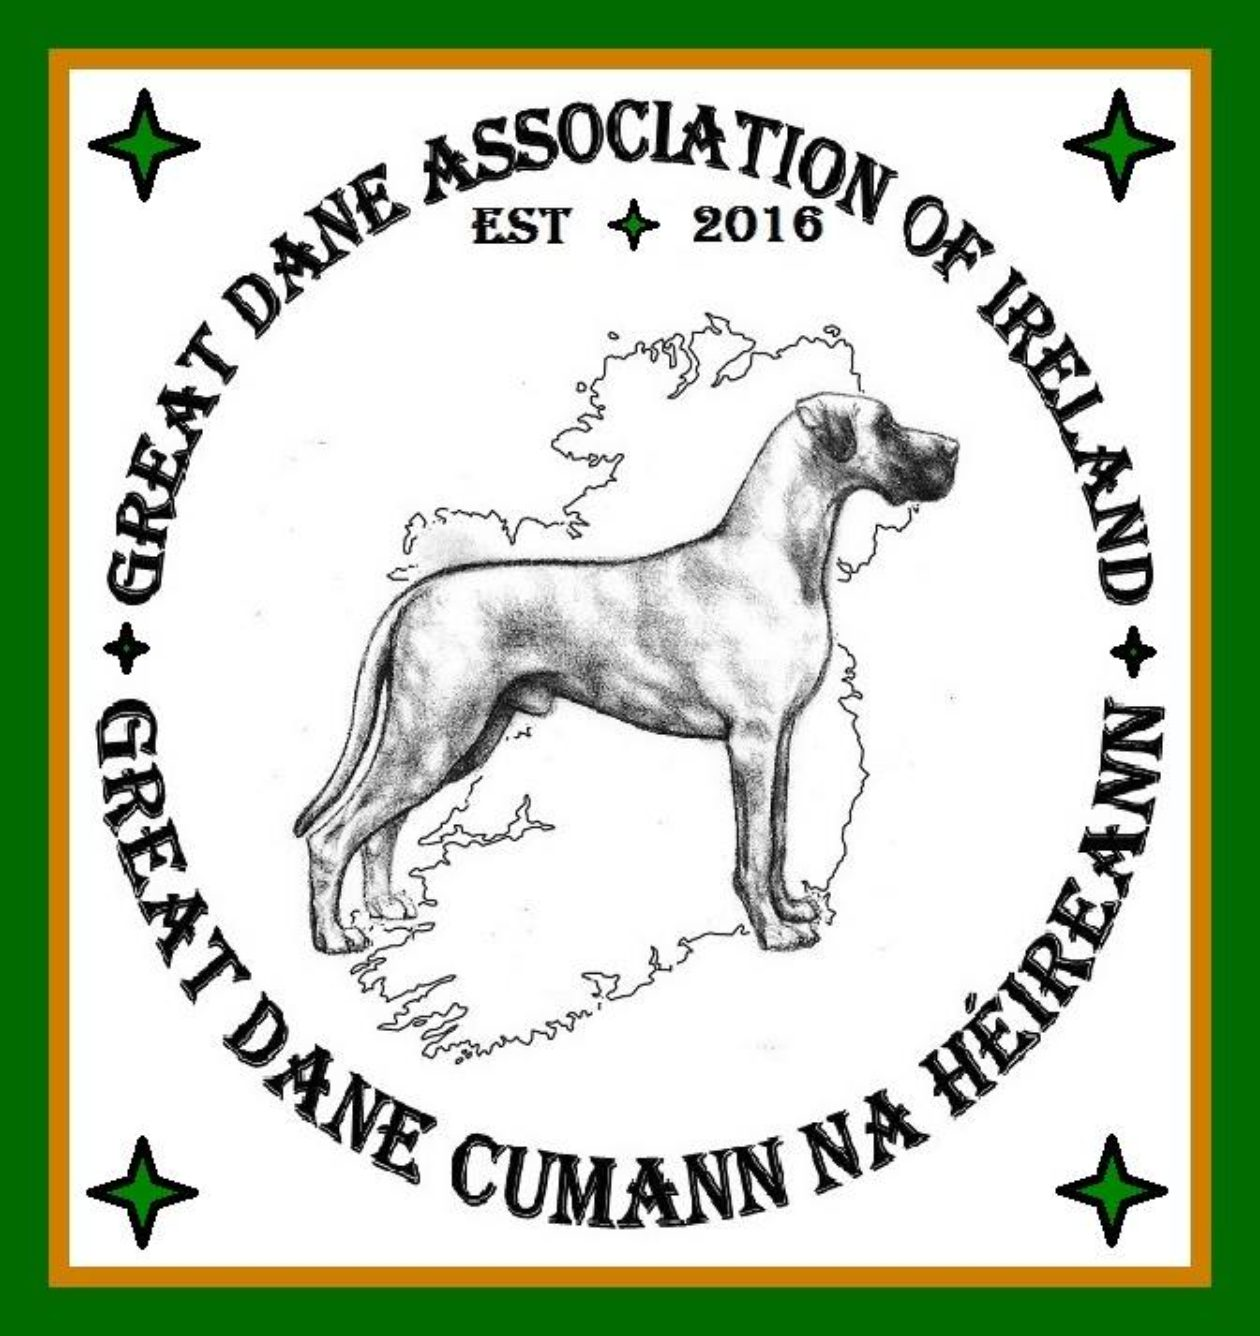 The Great Dane Association of Ireland